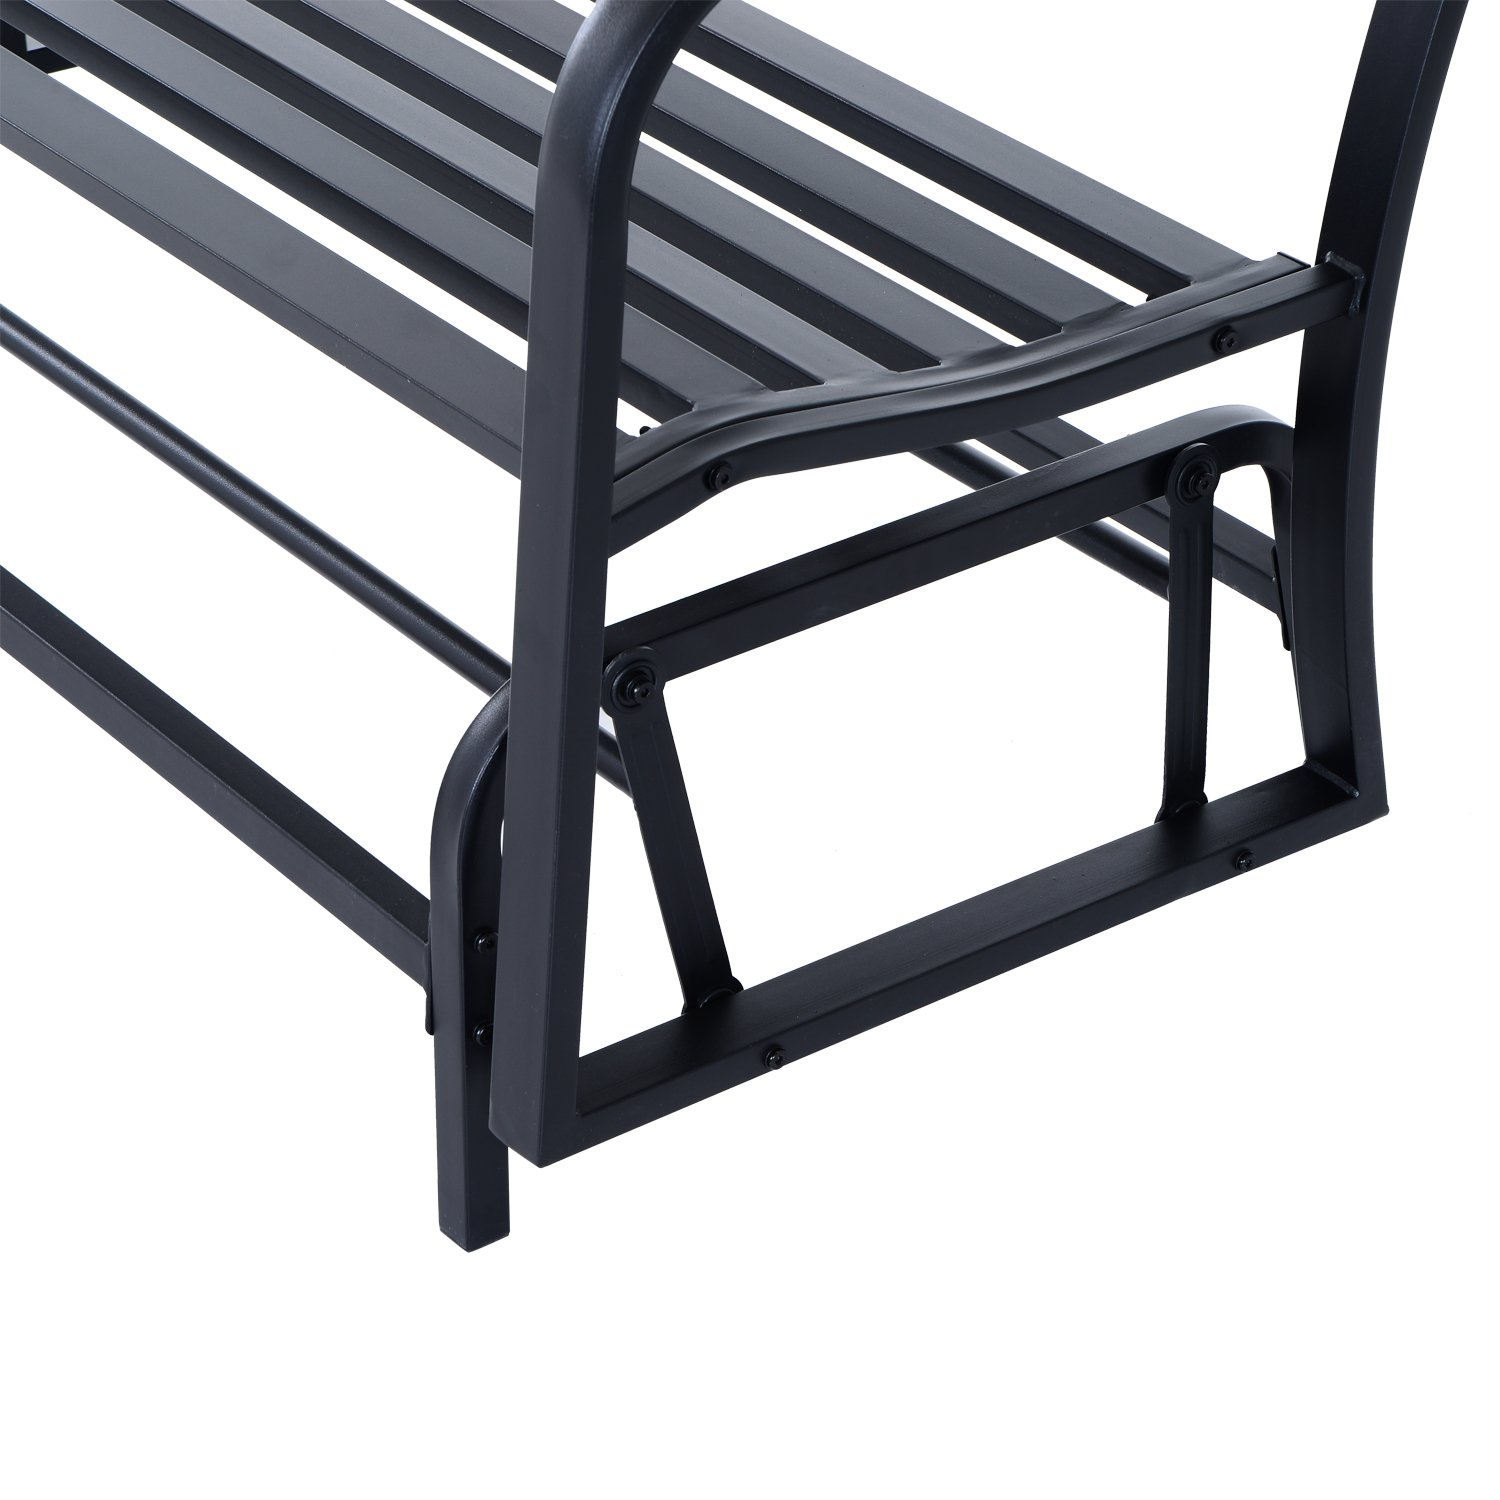 Outsunny Garden 2 Seater Metal Glider Chair Rocking Bench Patio